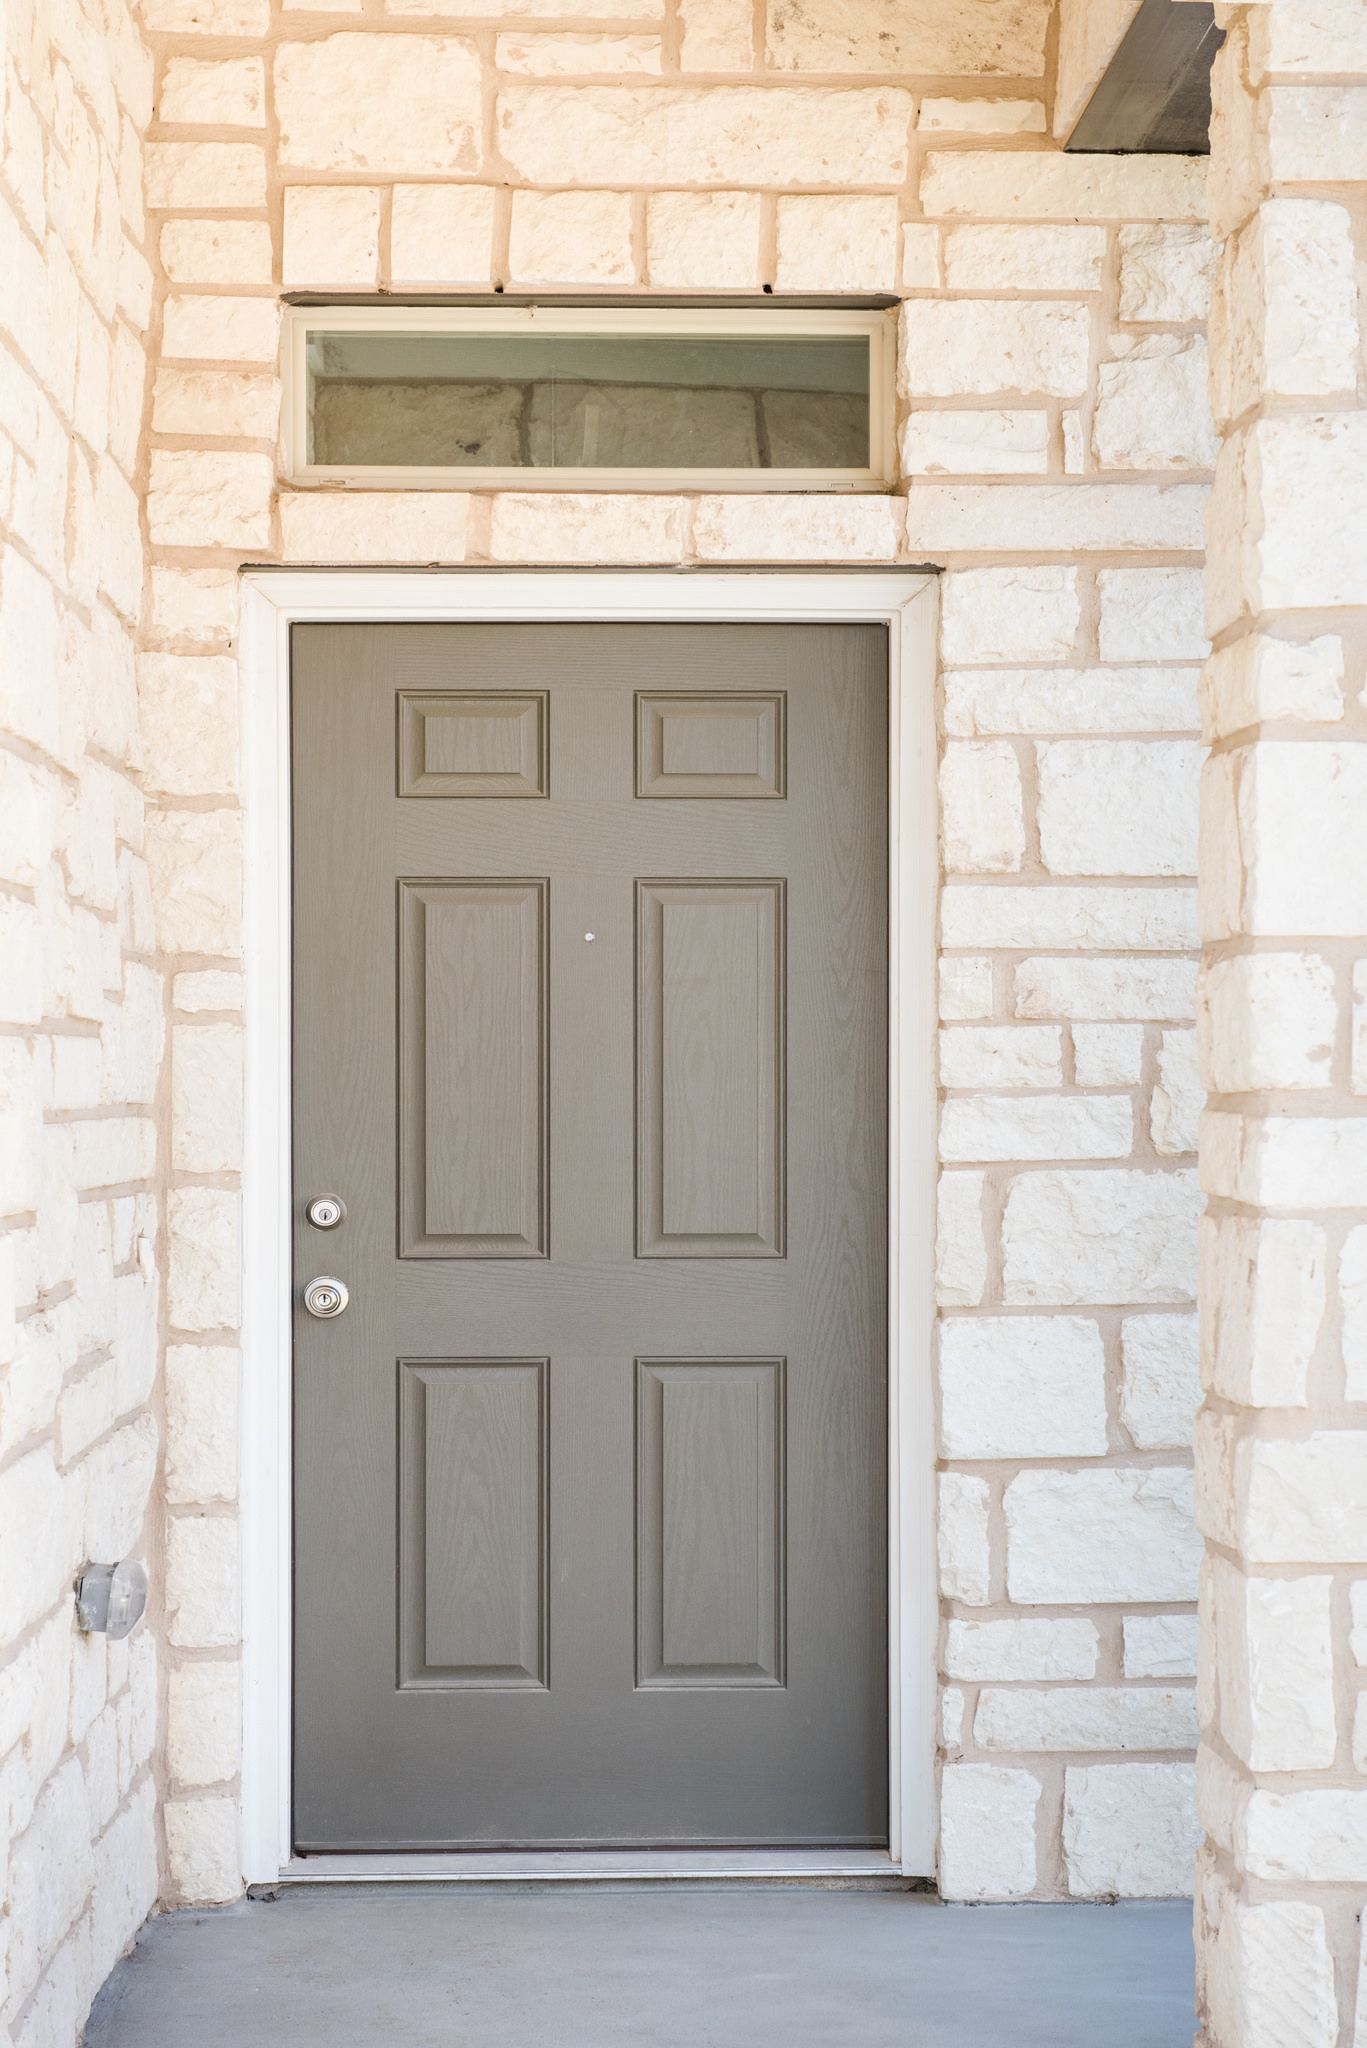 Classic Home Remodeling Exterior Plans addison | brown front doors, stone exterior and front doors